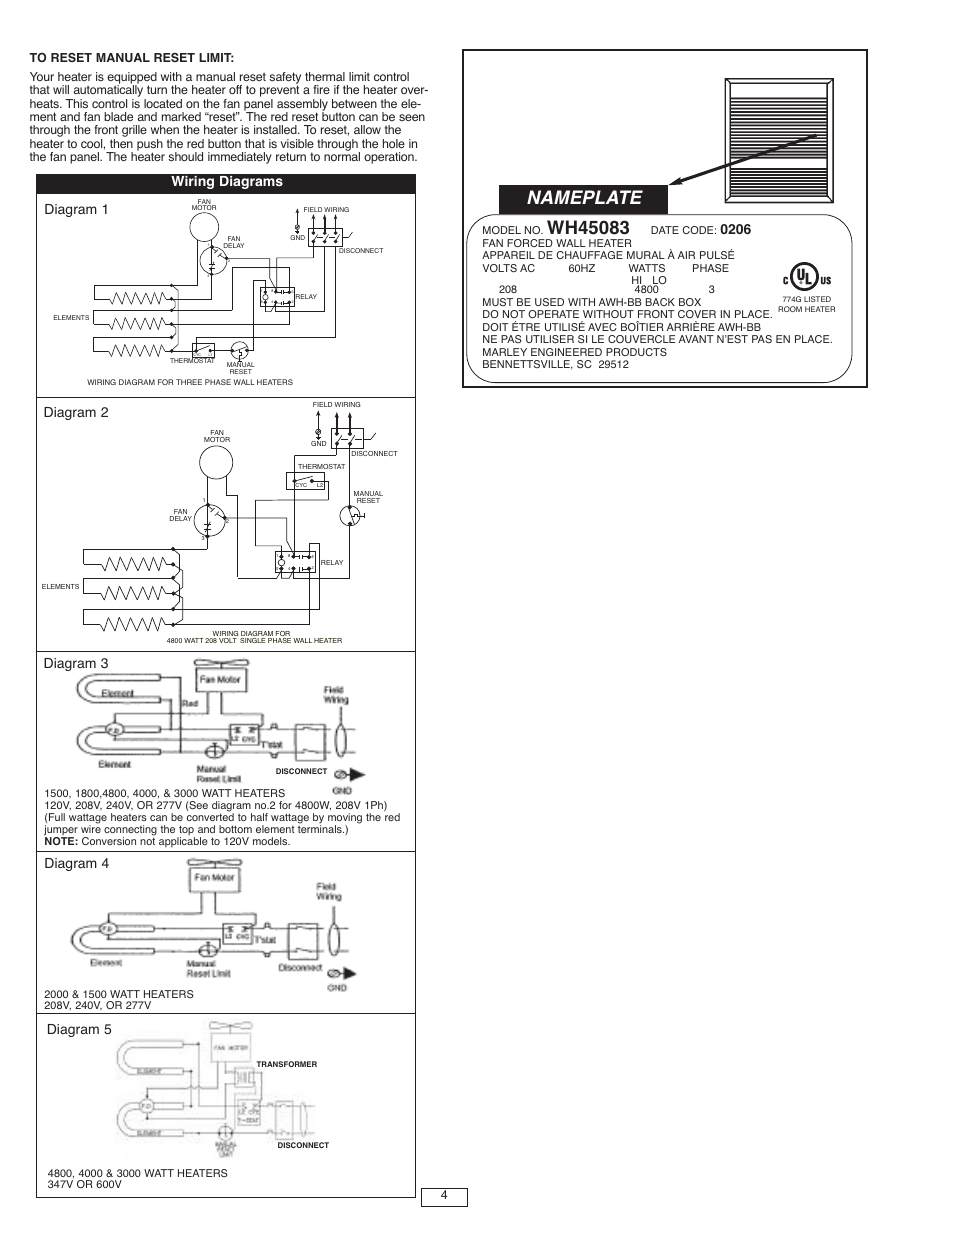 medium resolution of nameplate wiring diagrams qmark awh4000 series architectural heavy duty wall heaters user manual page 4 15